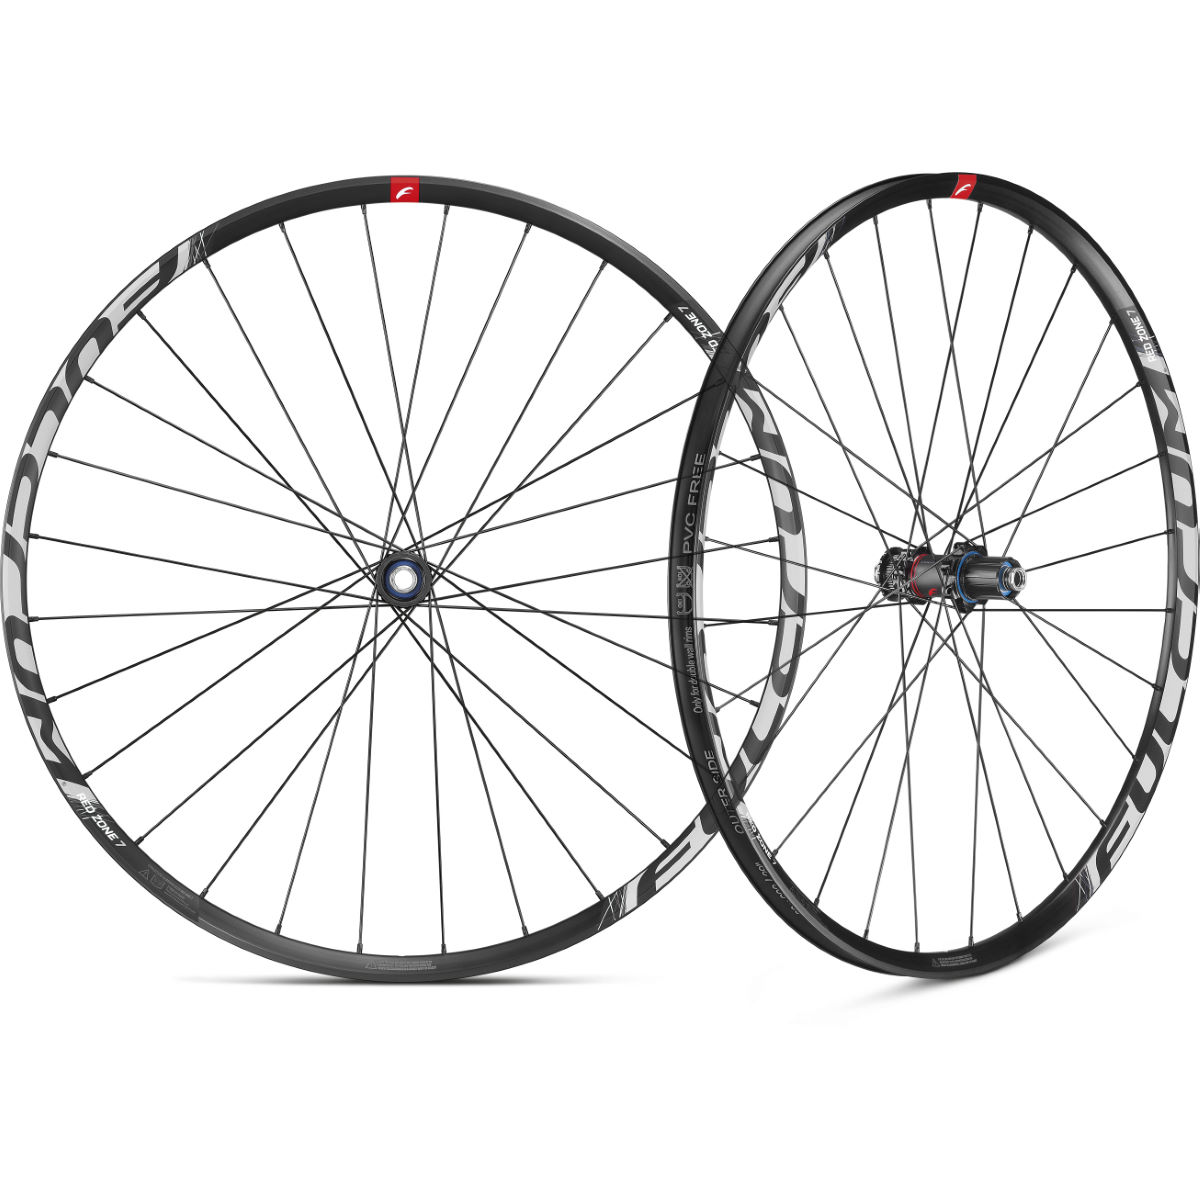 Fulcrum Red Zone 7 MTB Wheelset - Ruedas de competición